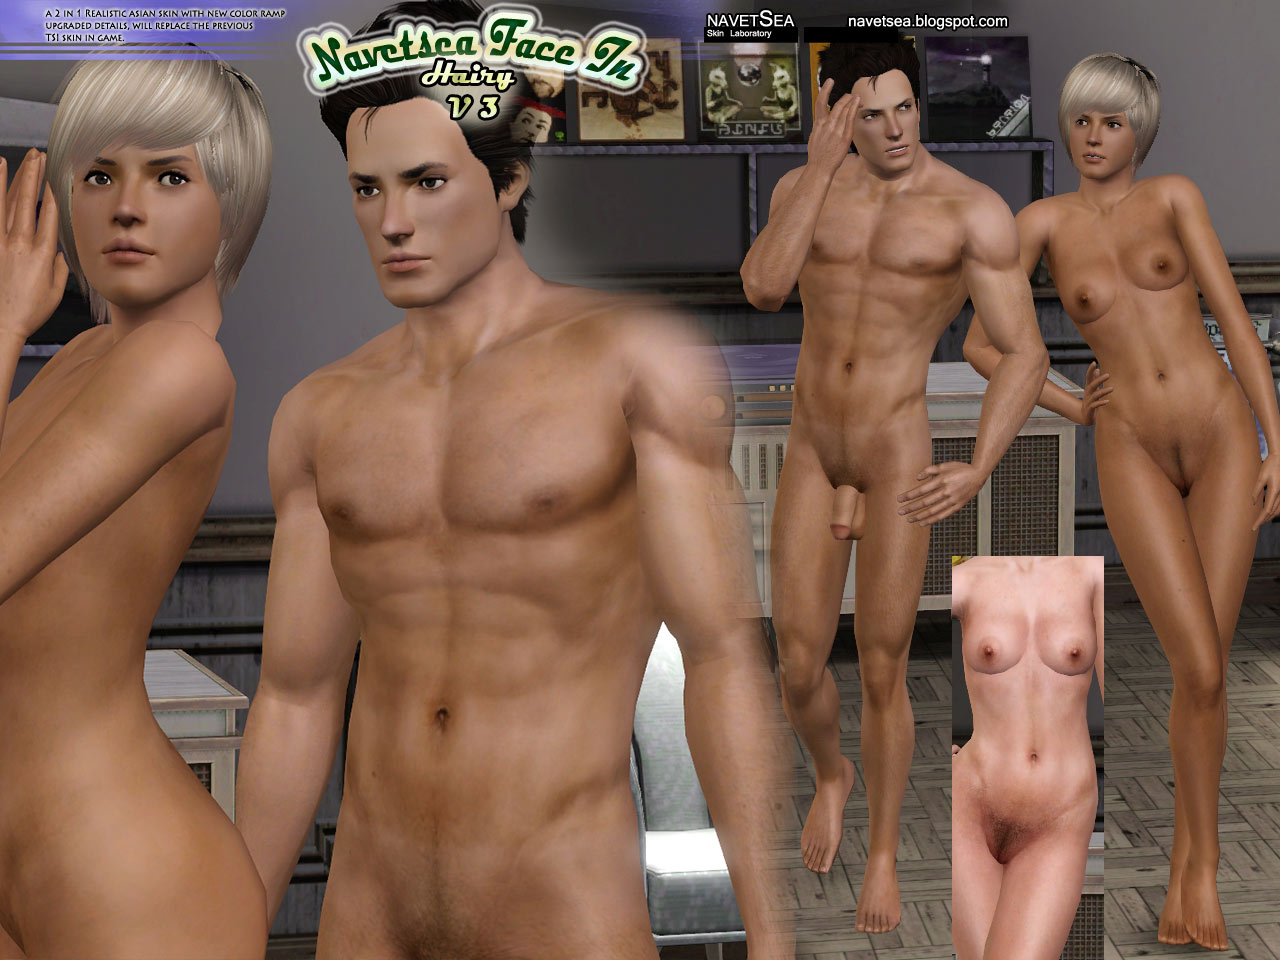 The sims 3 naked skins and sex  sexy photos